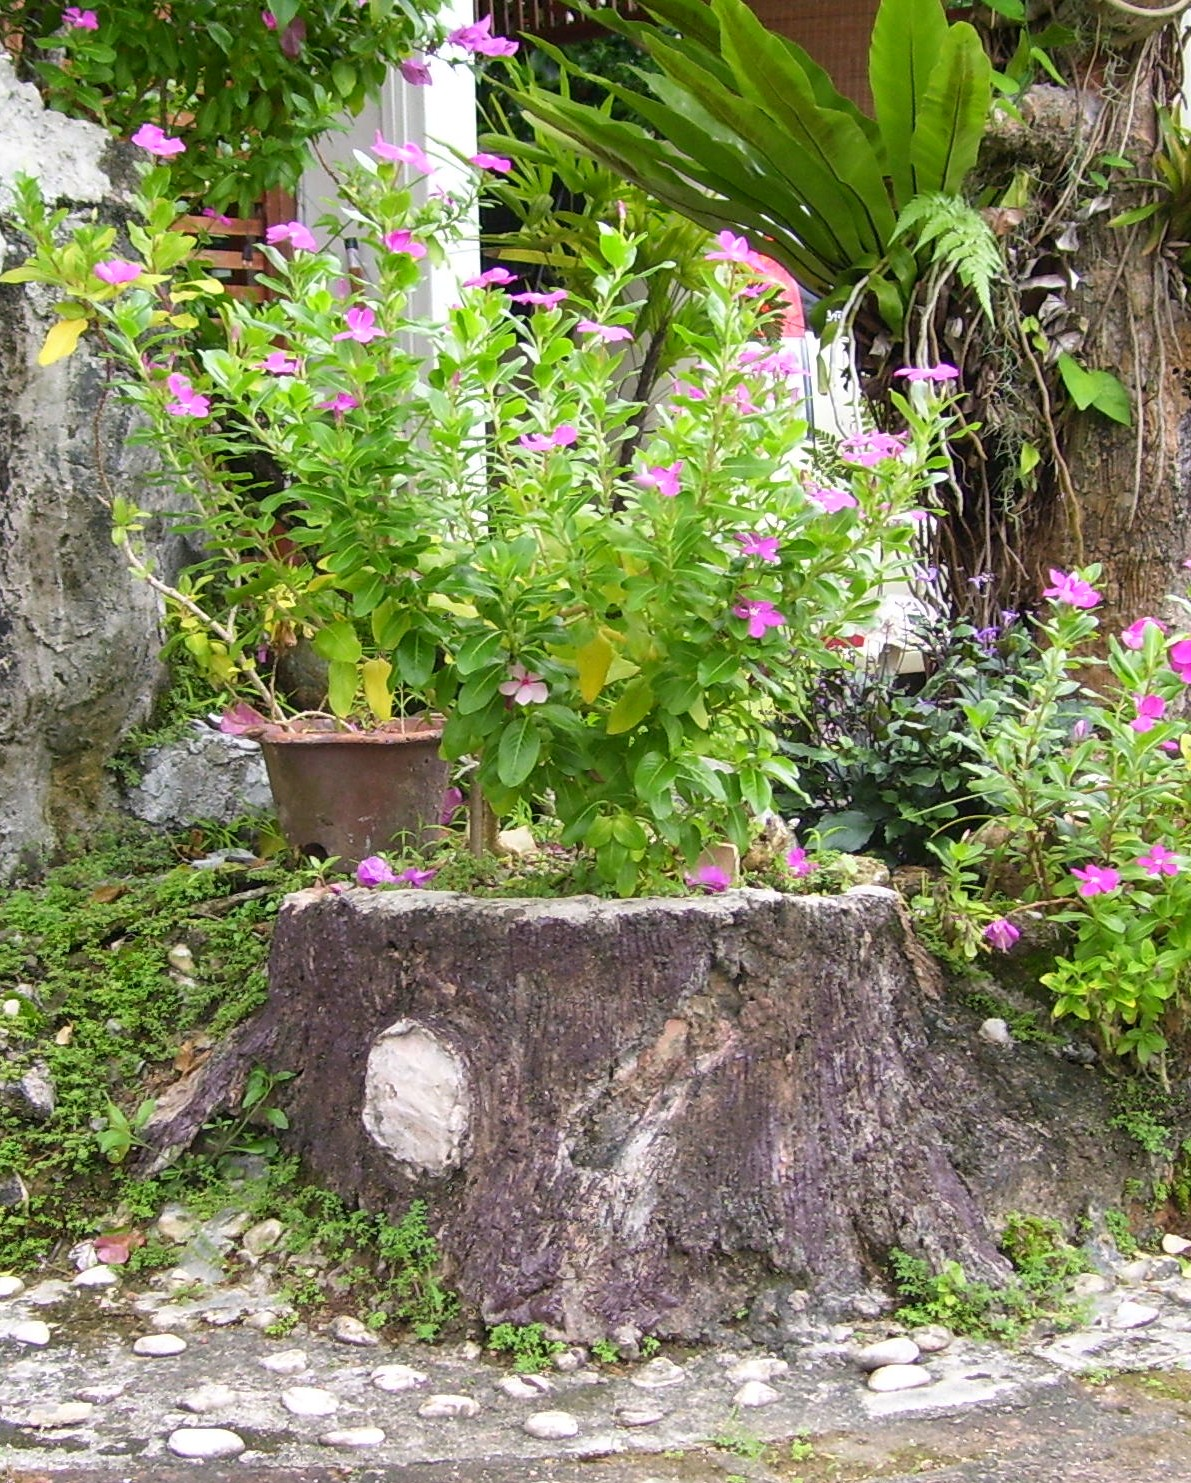 A Fake Stump Used As Planter For Periwinkles